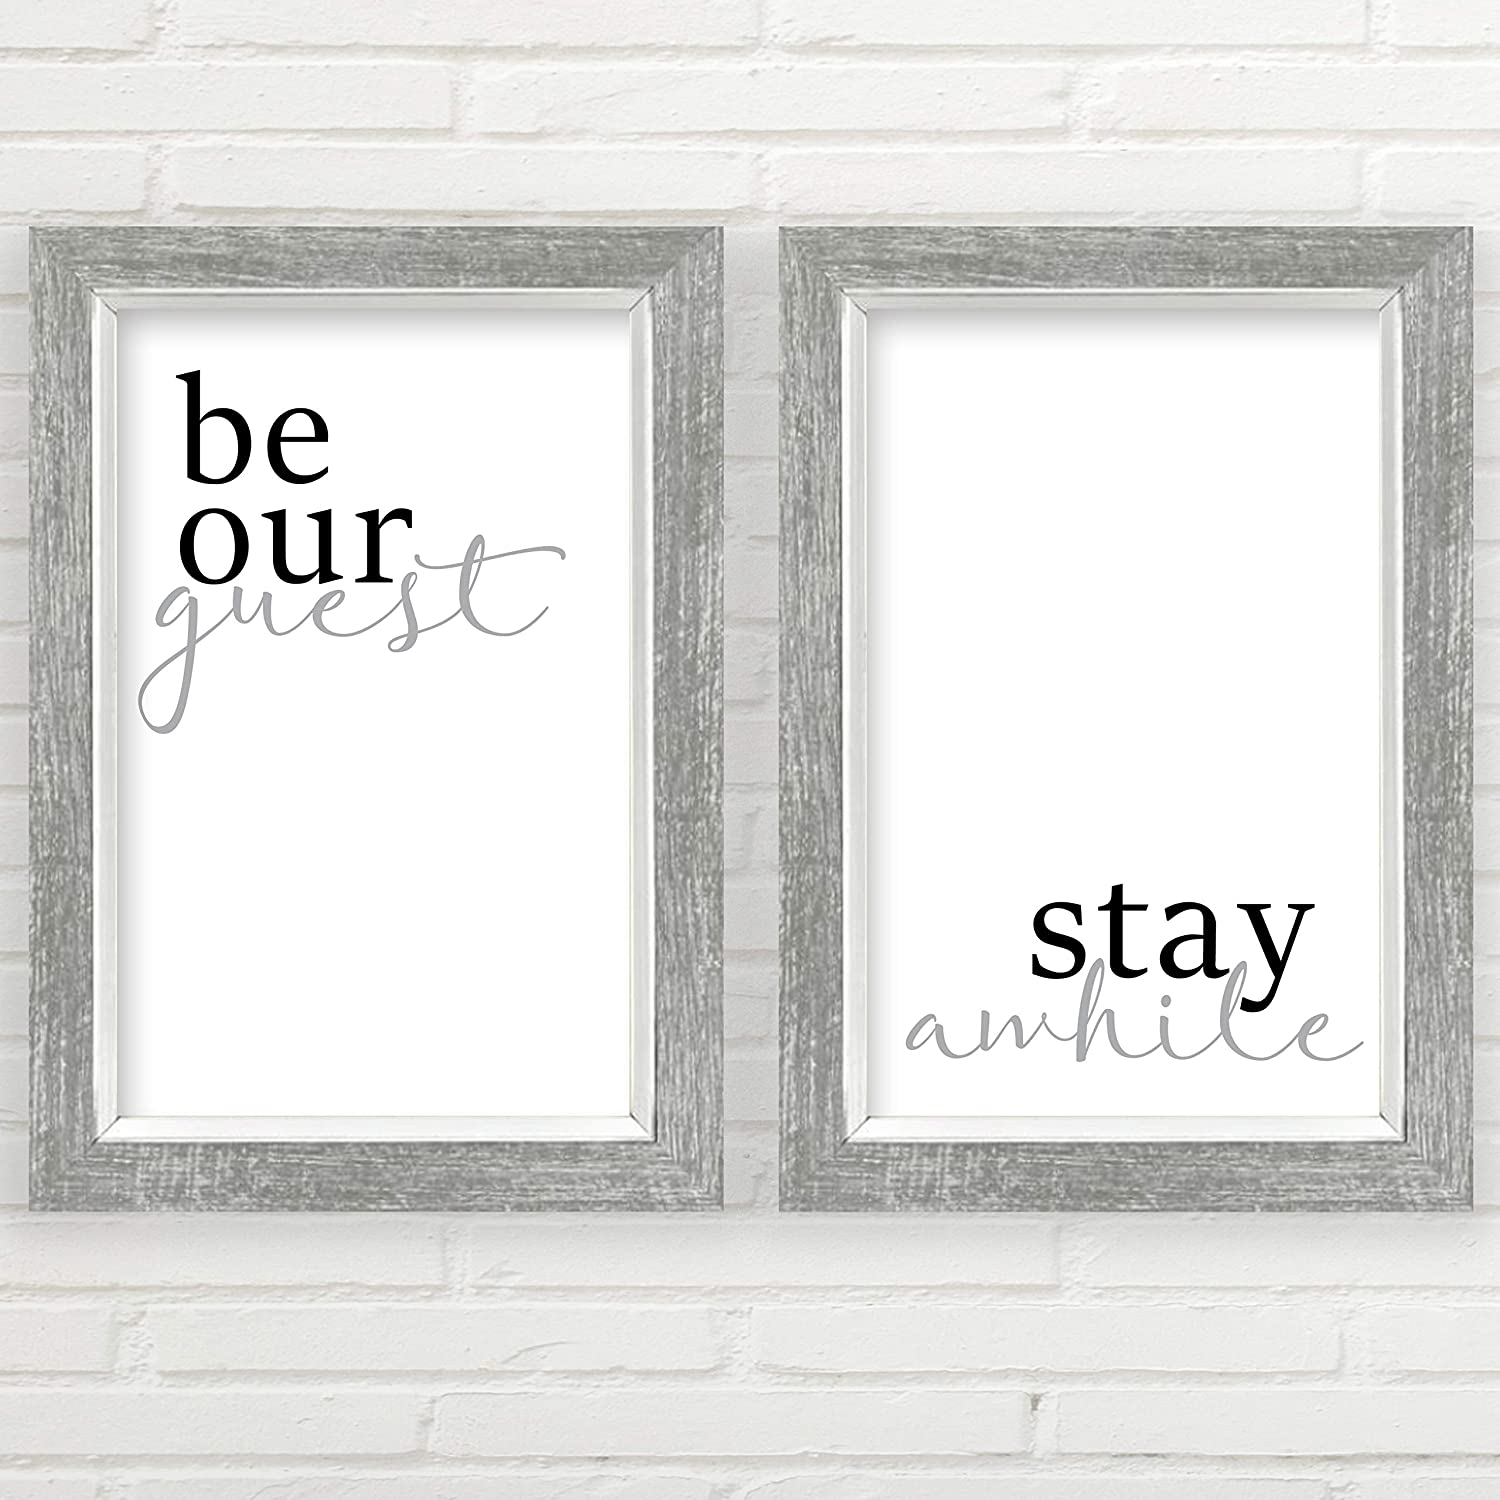 Be Our Japan Maker New Guest Stay Max 84% OFF Awhile Wall inch 11x17 Unframed Decor Prints